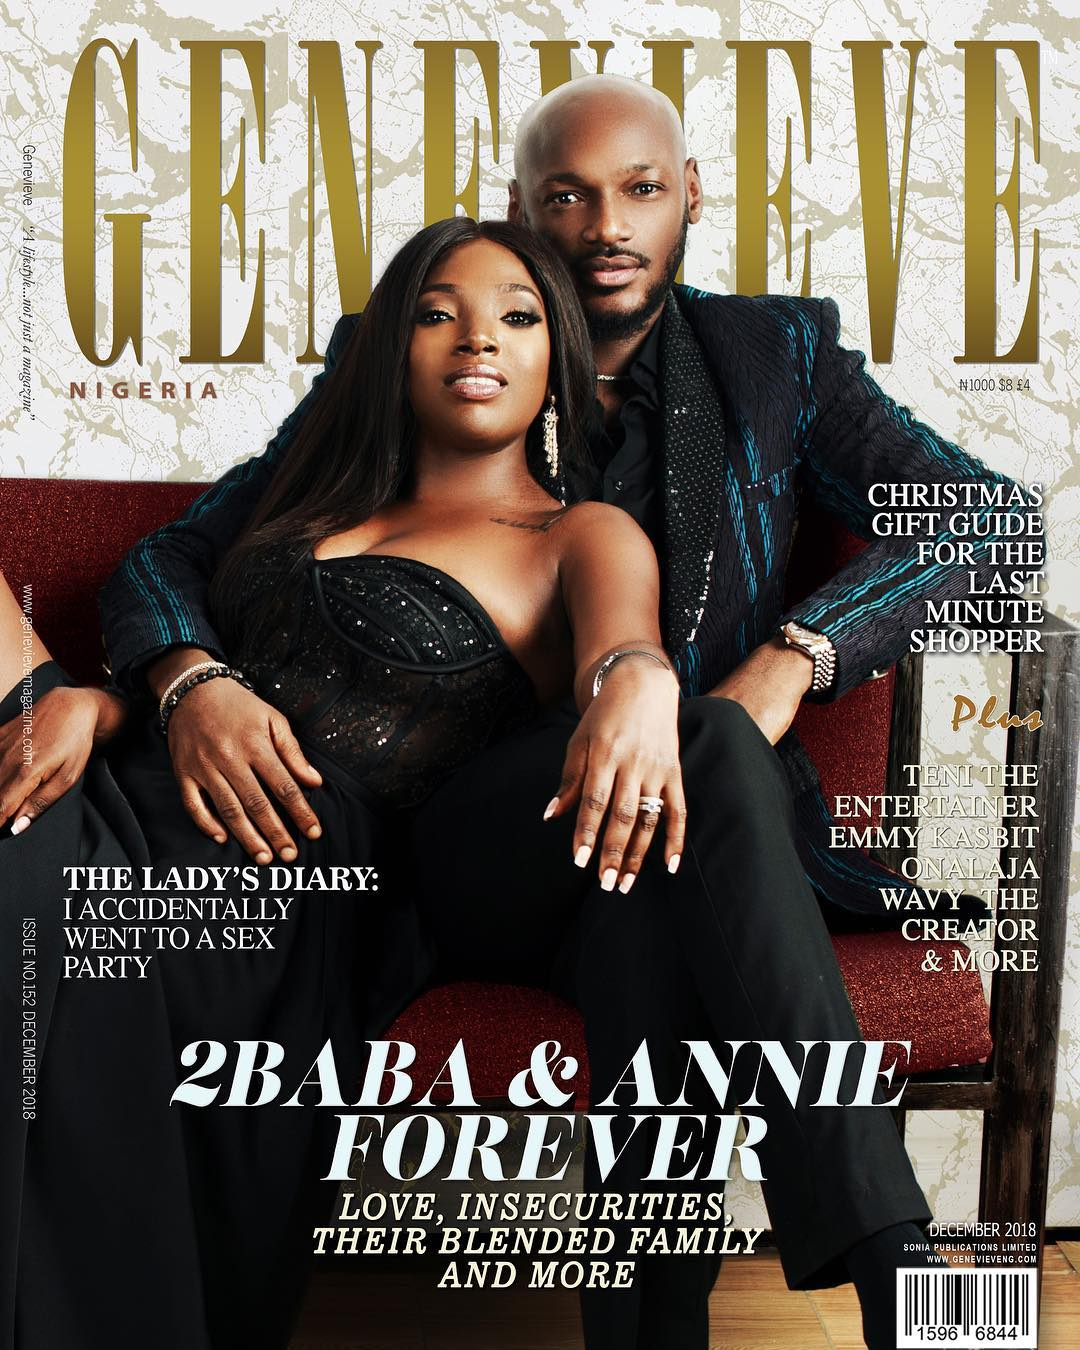 2Baba & Annie talk Love, Insecurities & their Blended Family in Genevieve Magazine's December Issue!